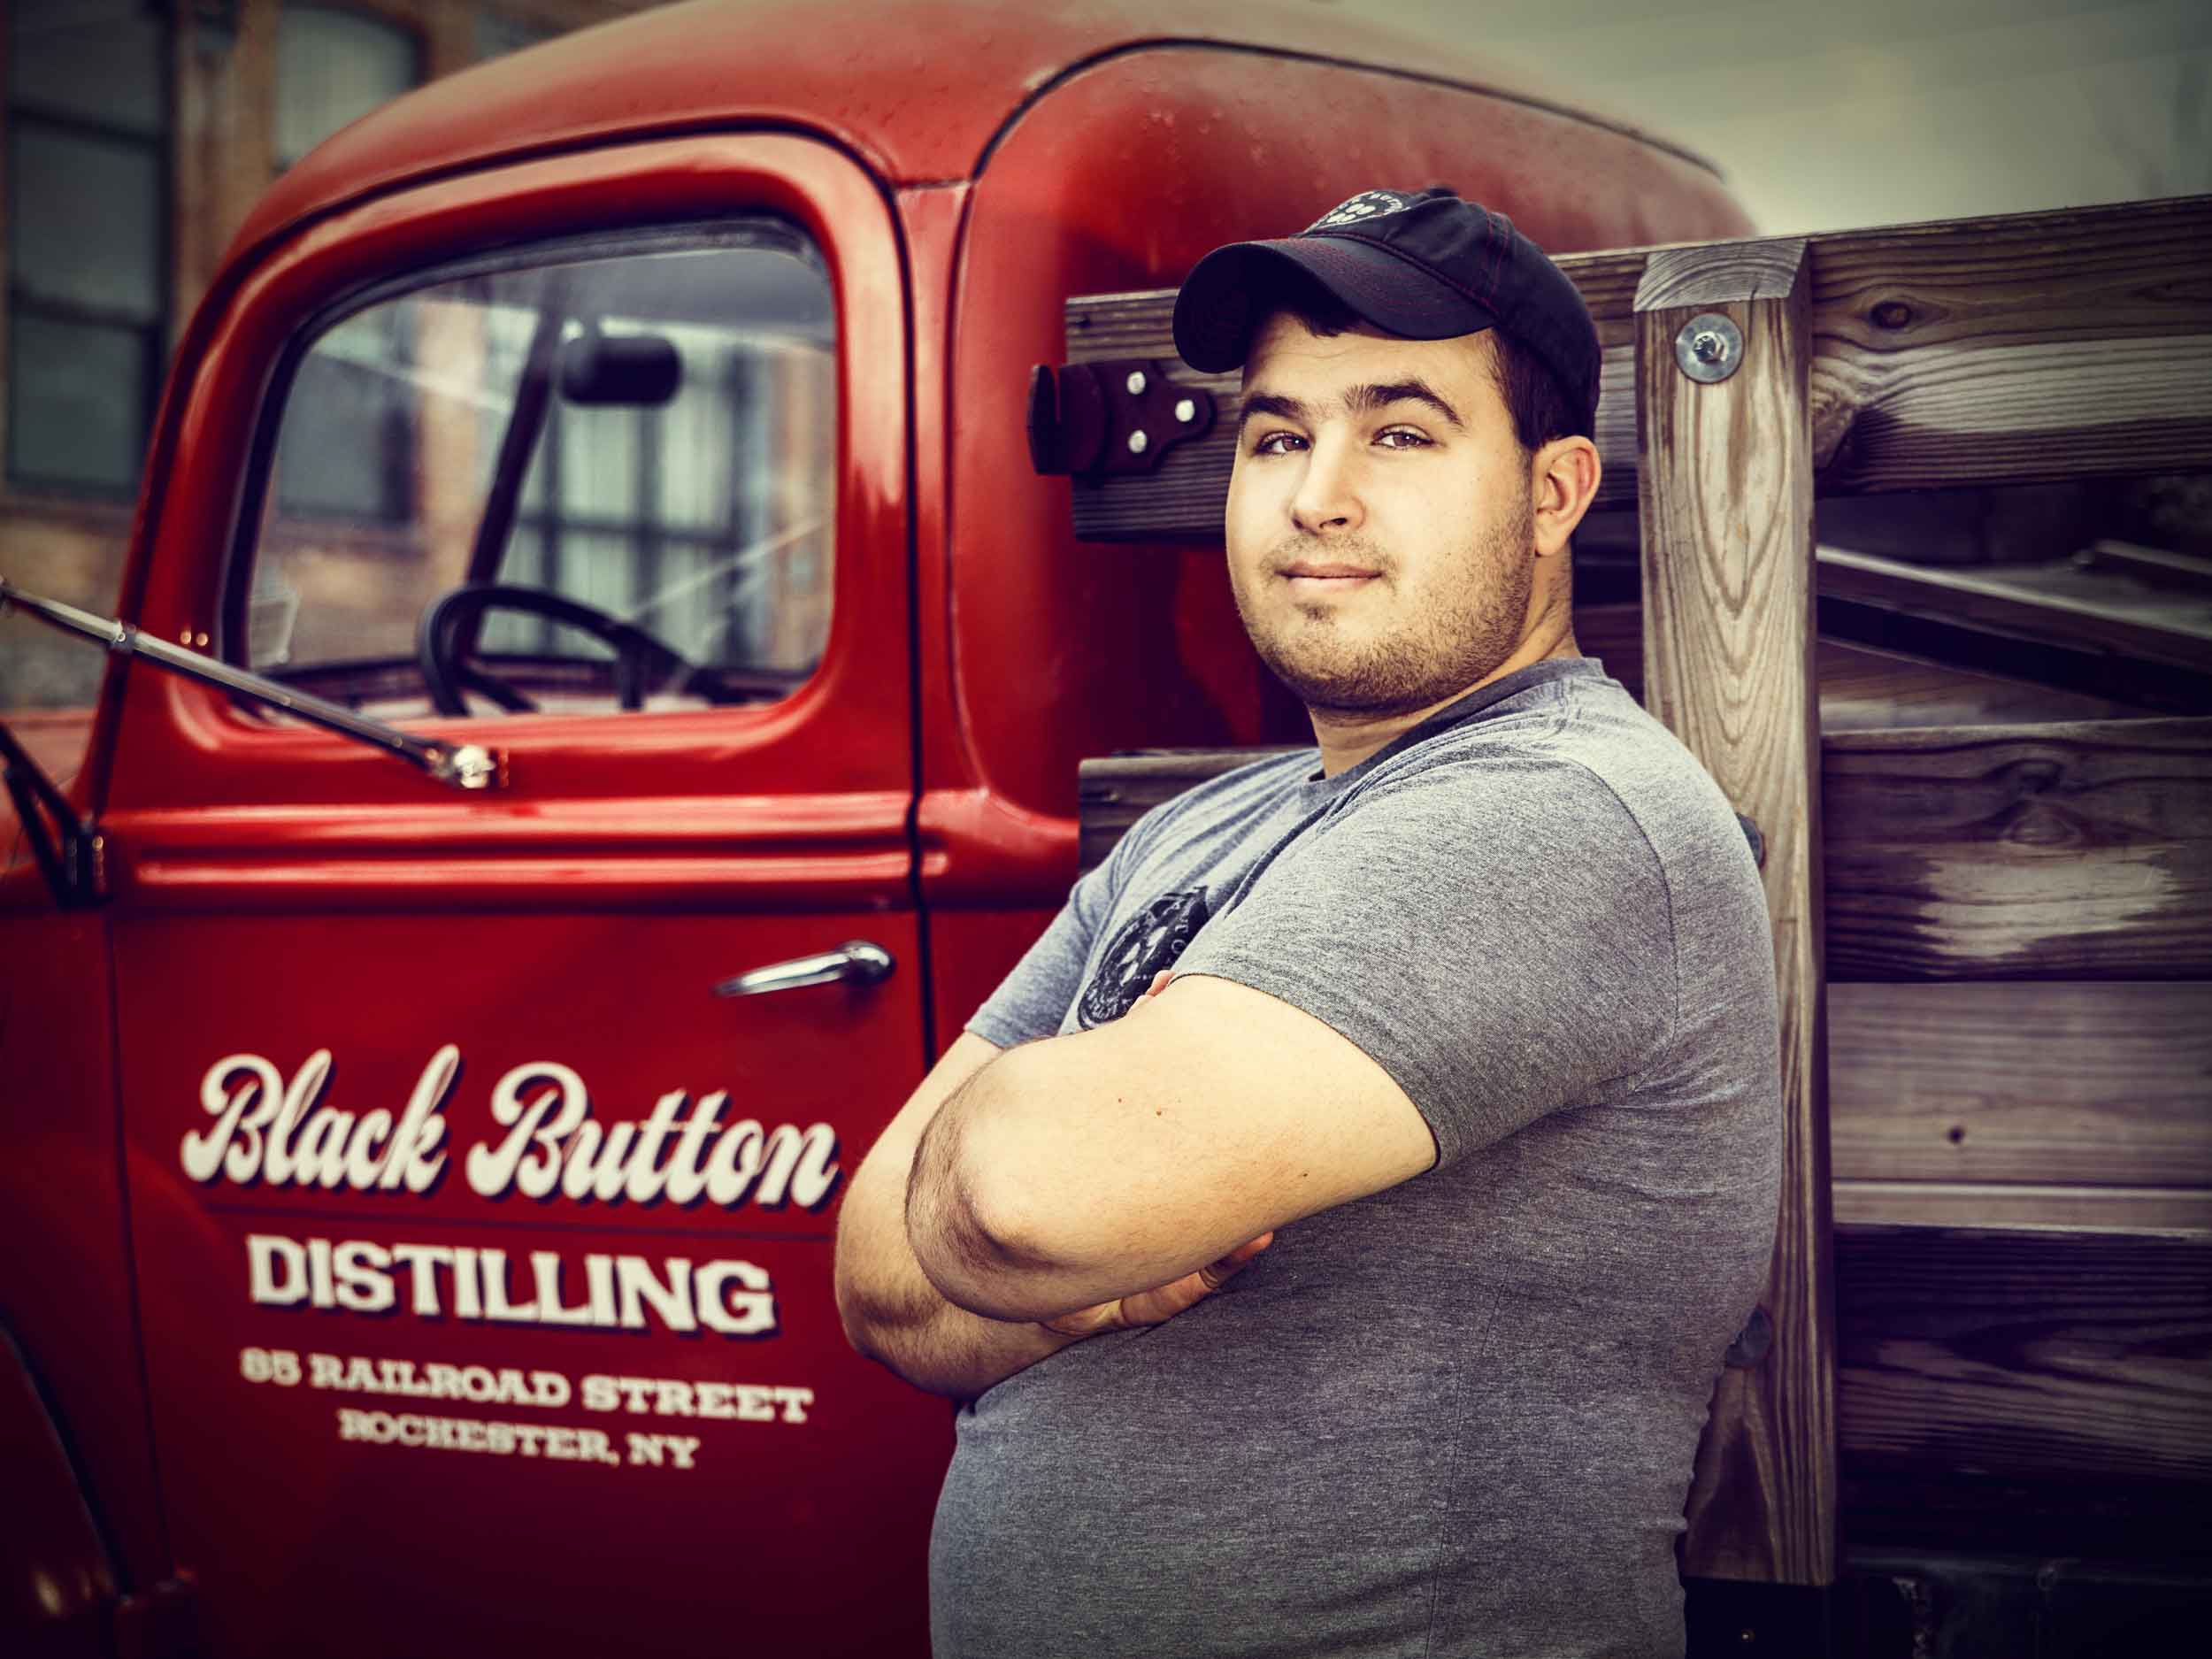 Owner and creator of Black Button Distilling, Jason Barrett, stands harms folded and smiling in front of Black Button Distilling Farm Truck